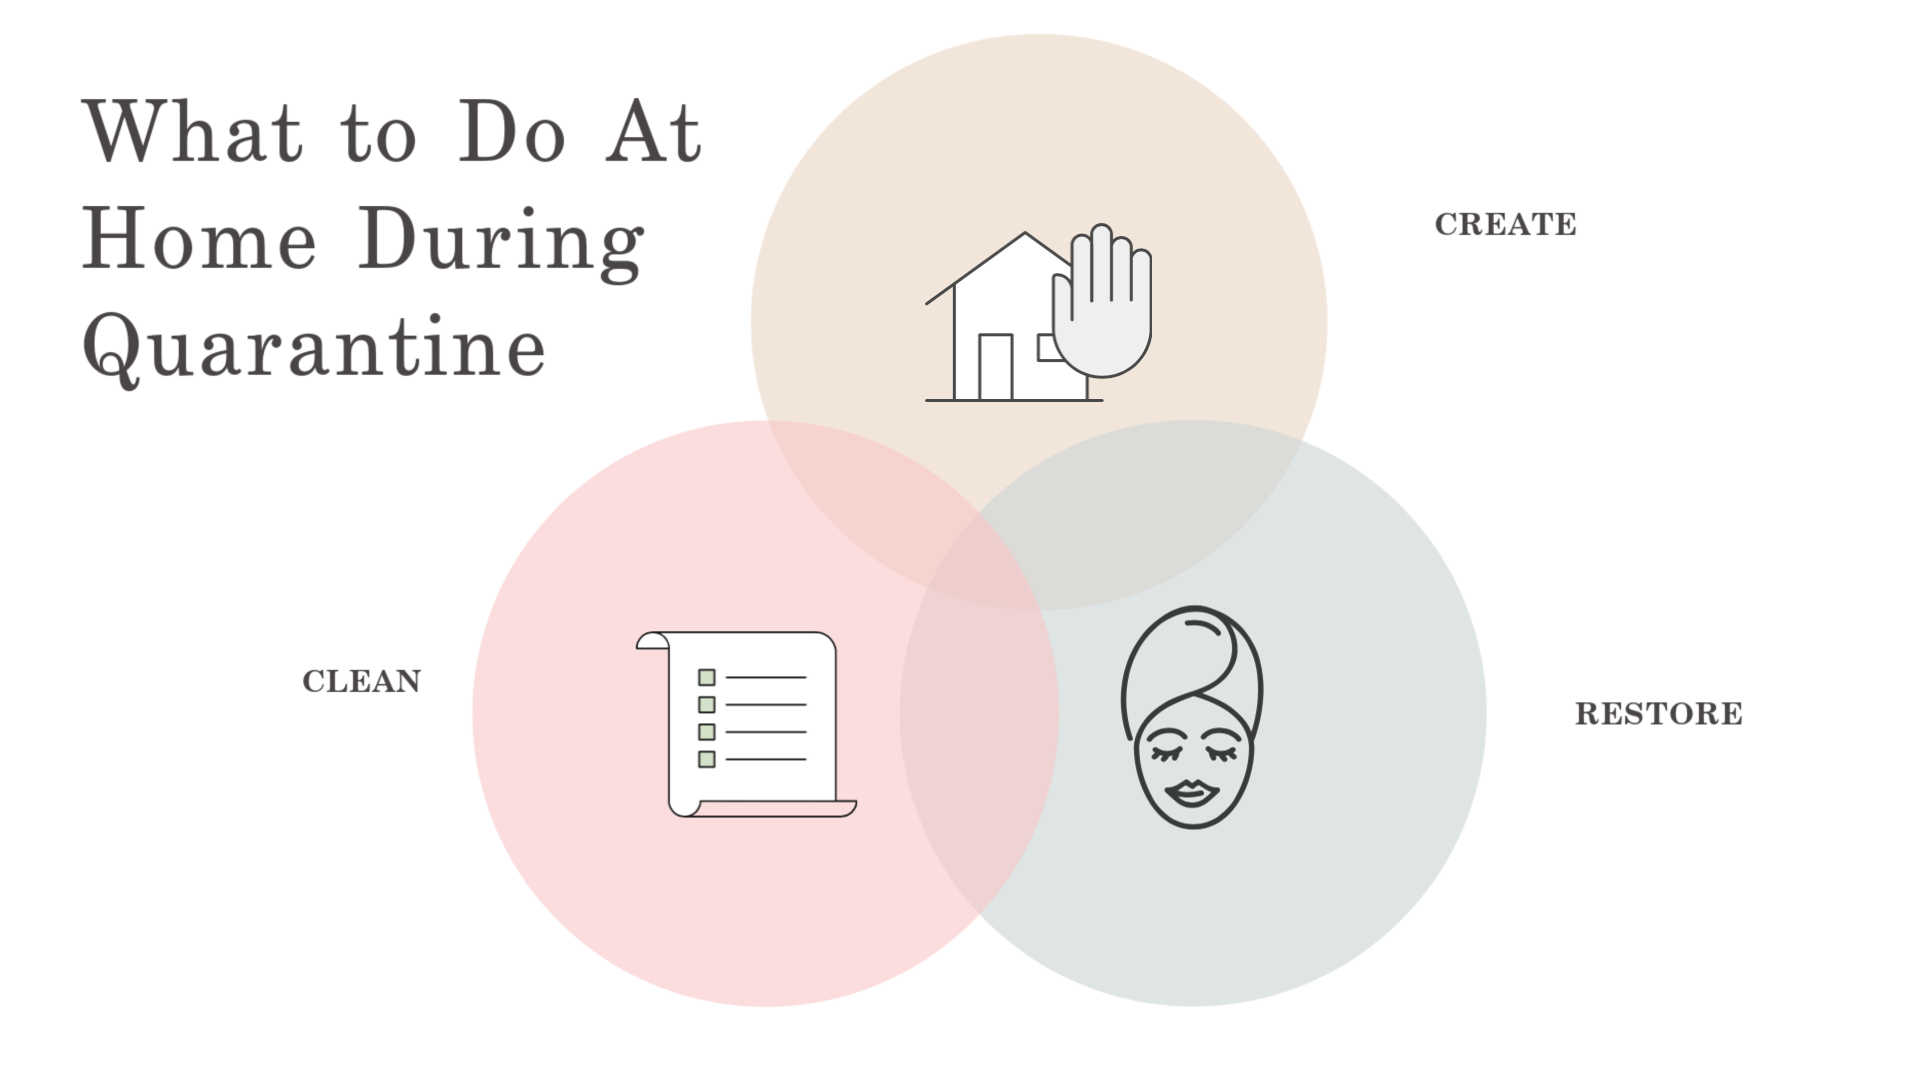 what to do at home during quarantine